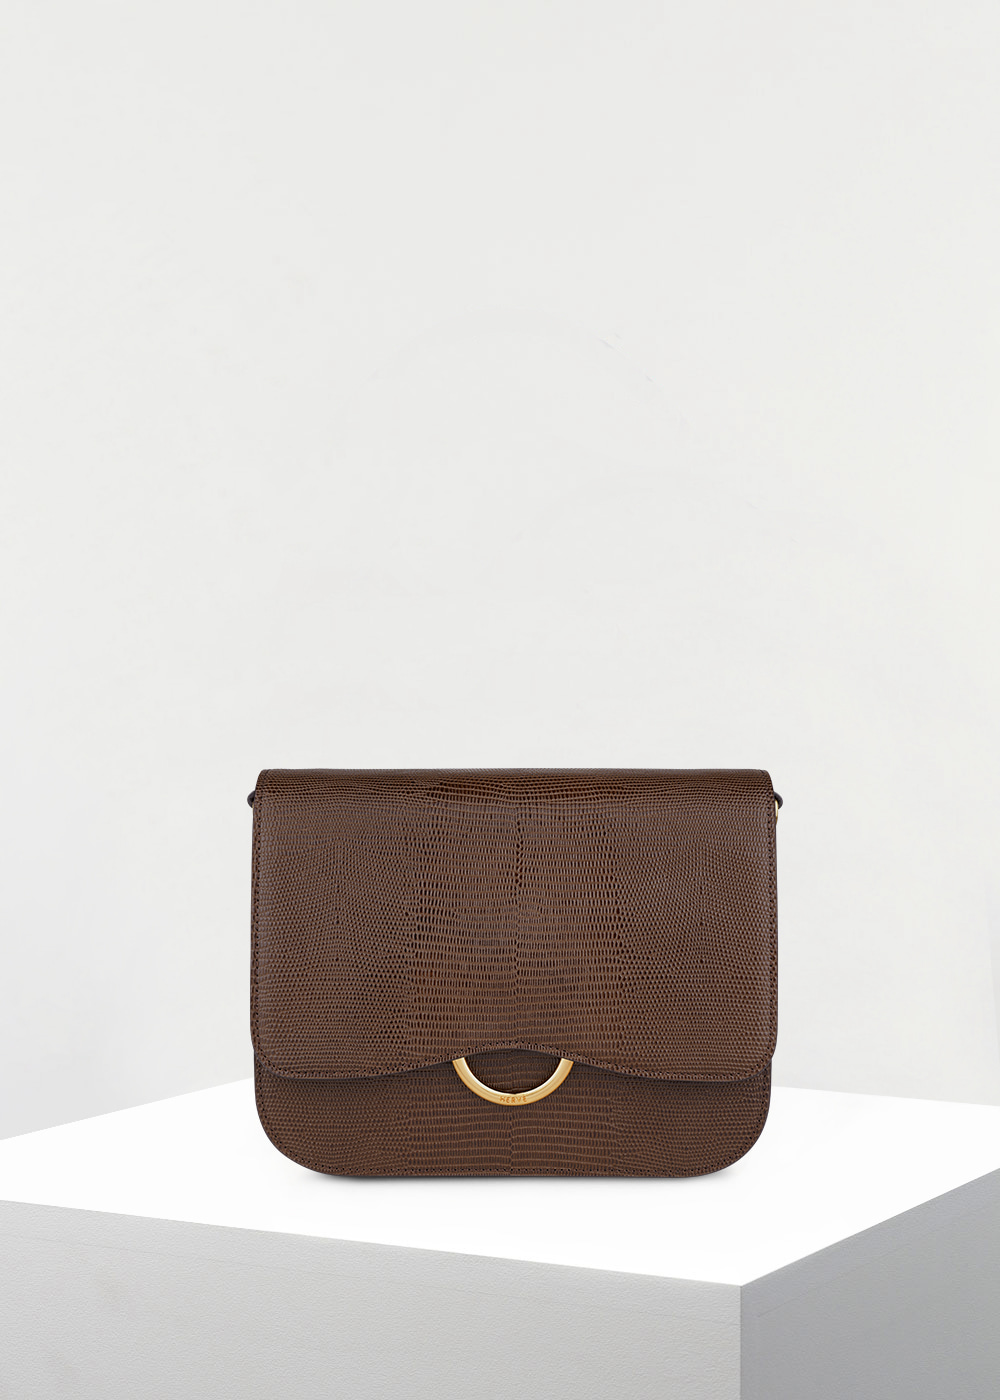 LONDE BAG_LIZARD BROWN